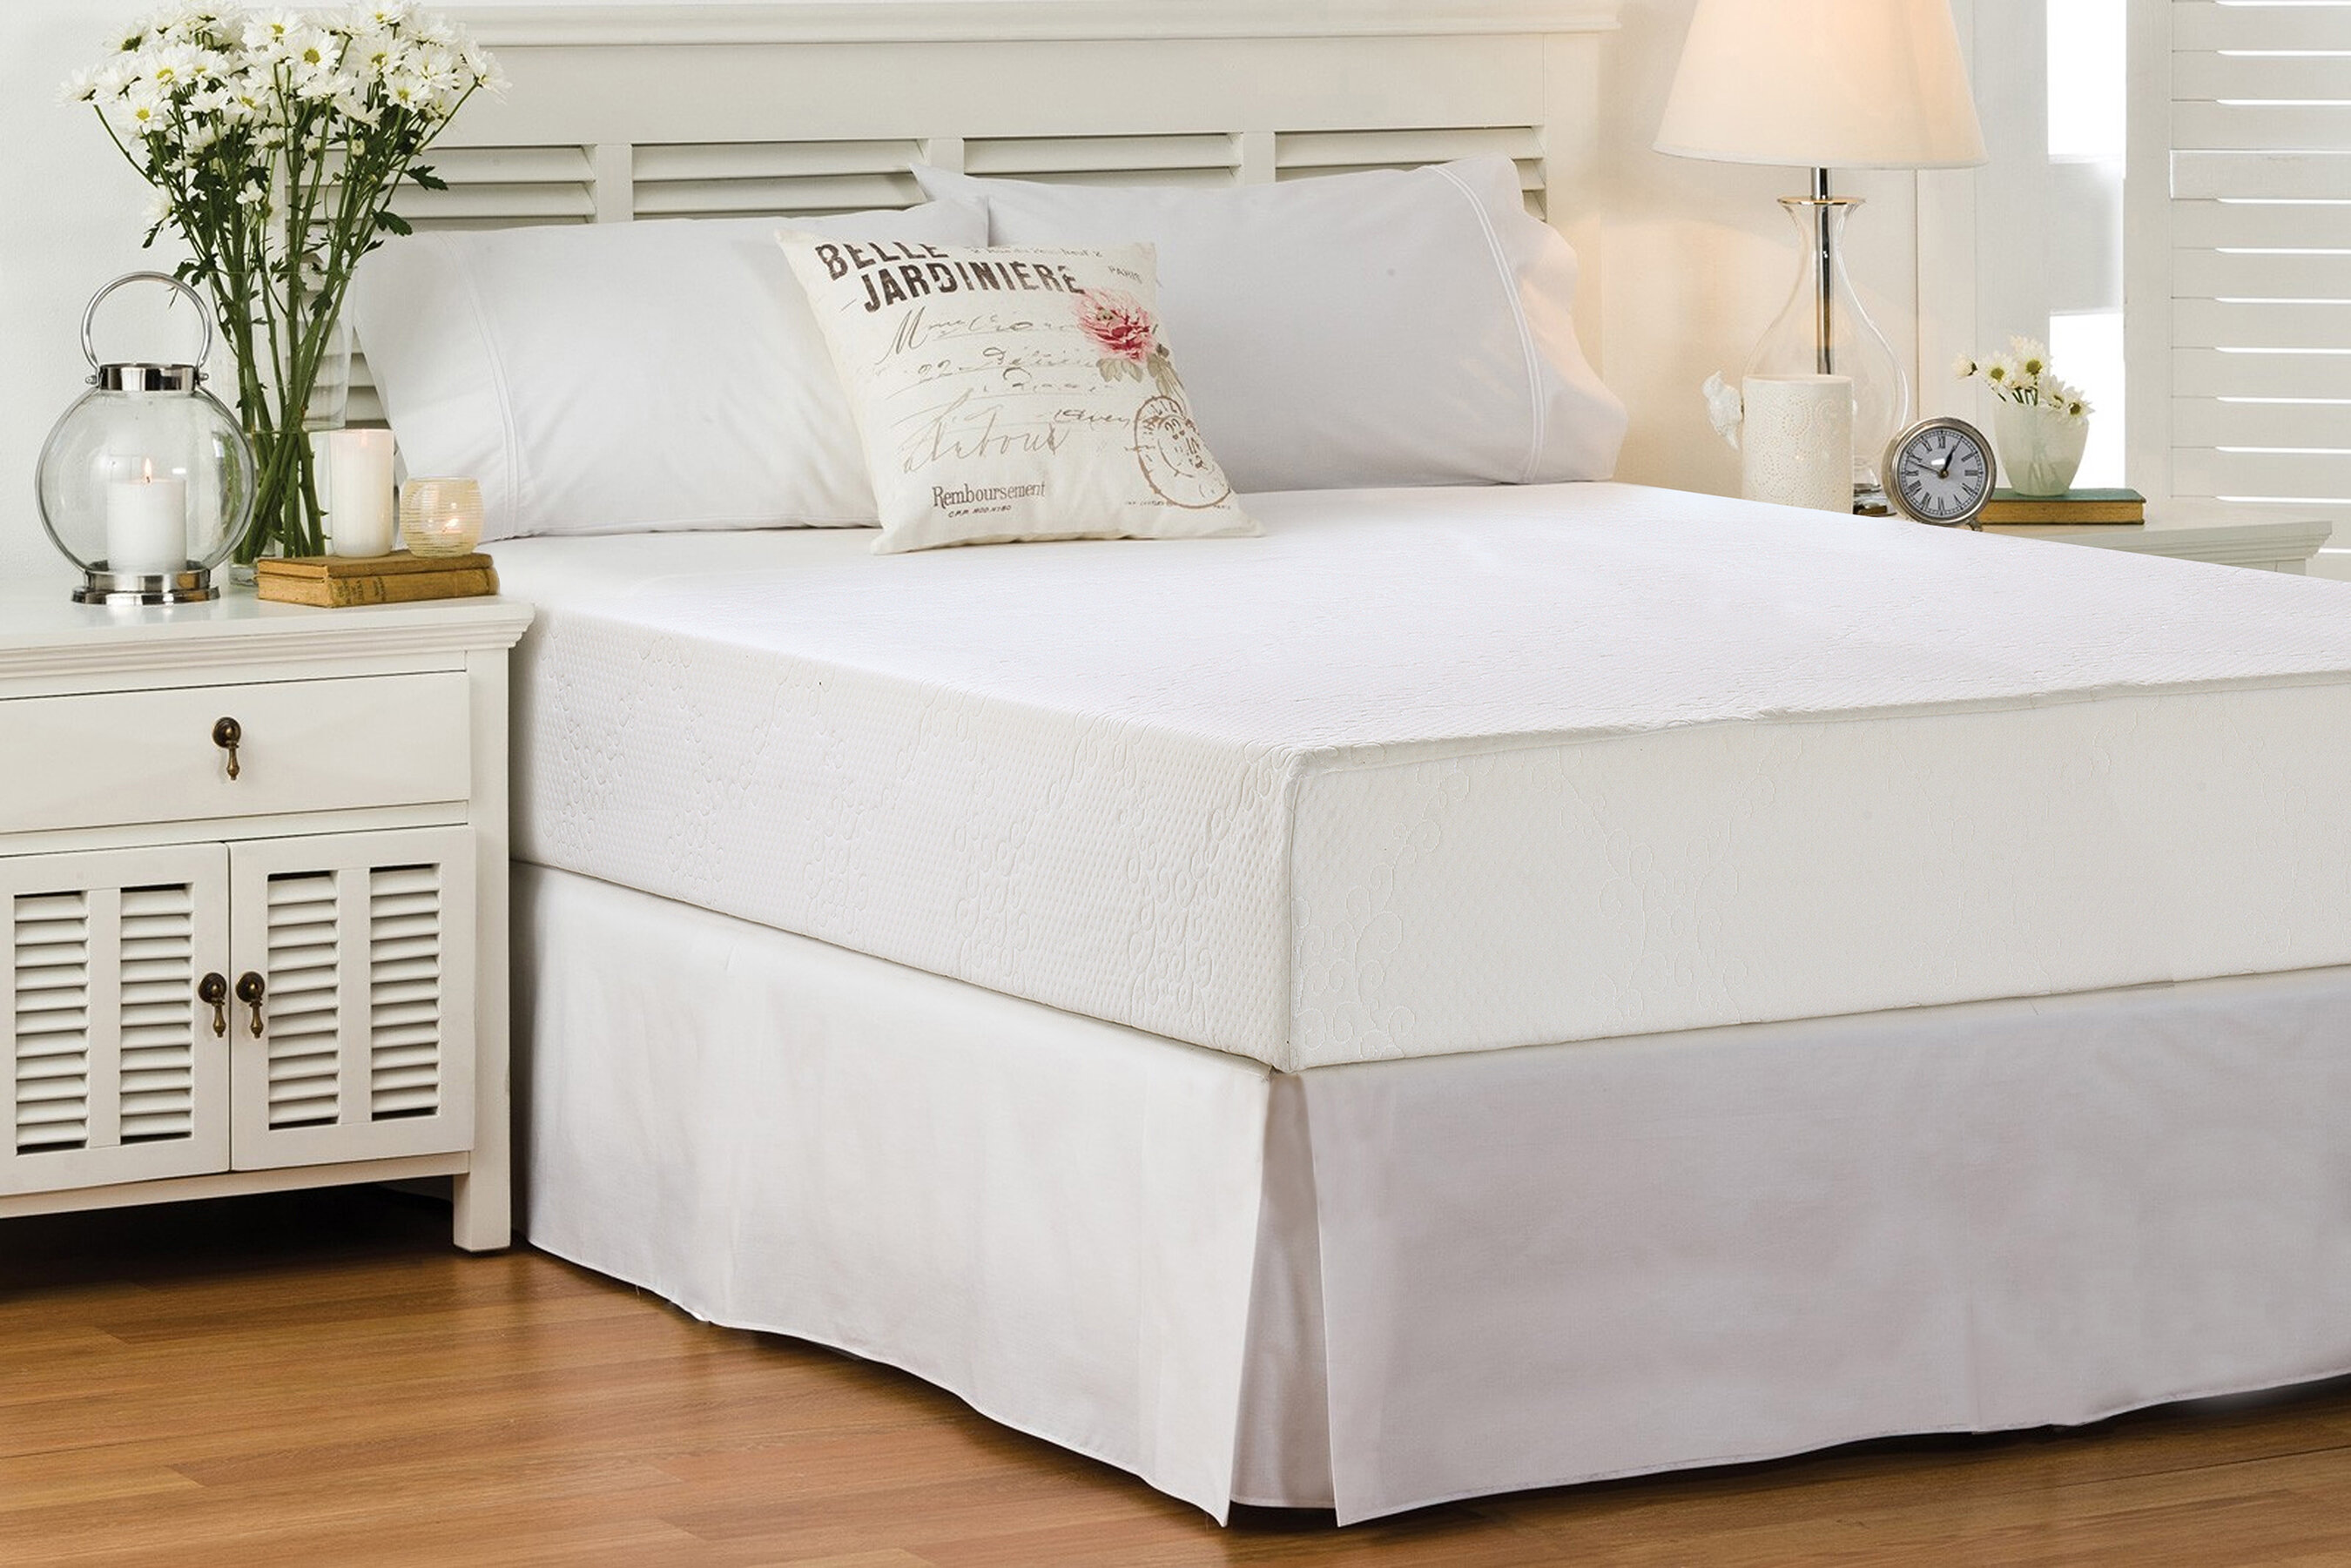 Wayfair Basics 14 Bed Skirt Reviews Wayfair